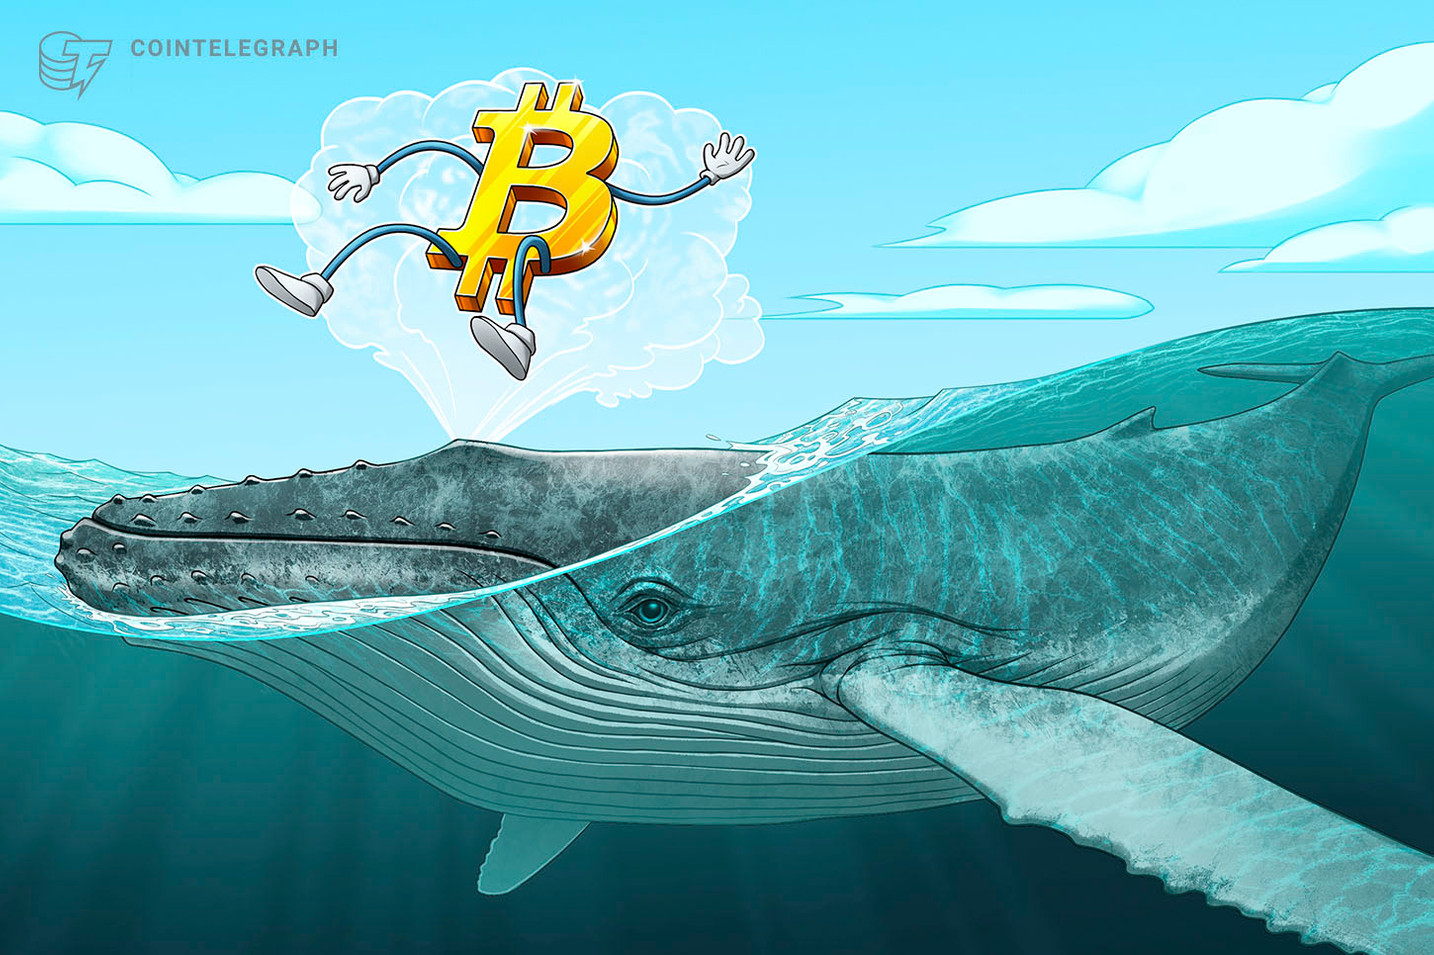 Whale clusters pinpoint 4 critical short-term Bitcoin price levels